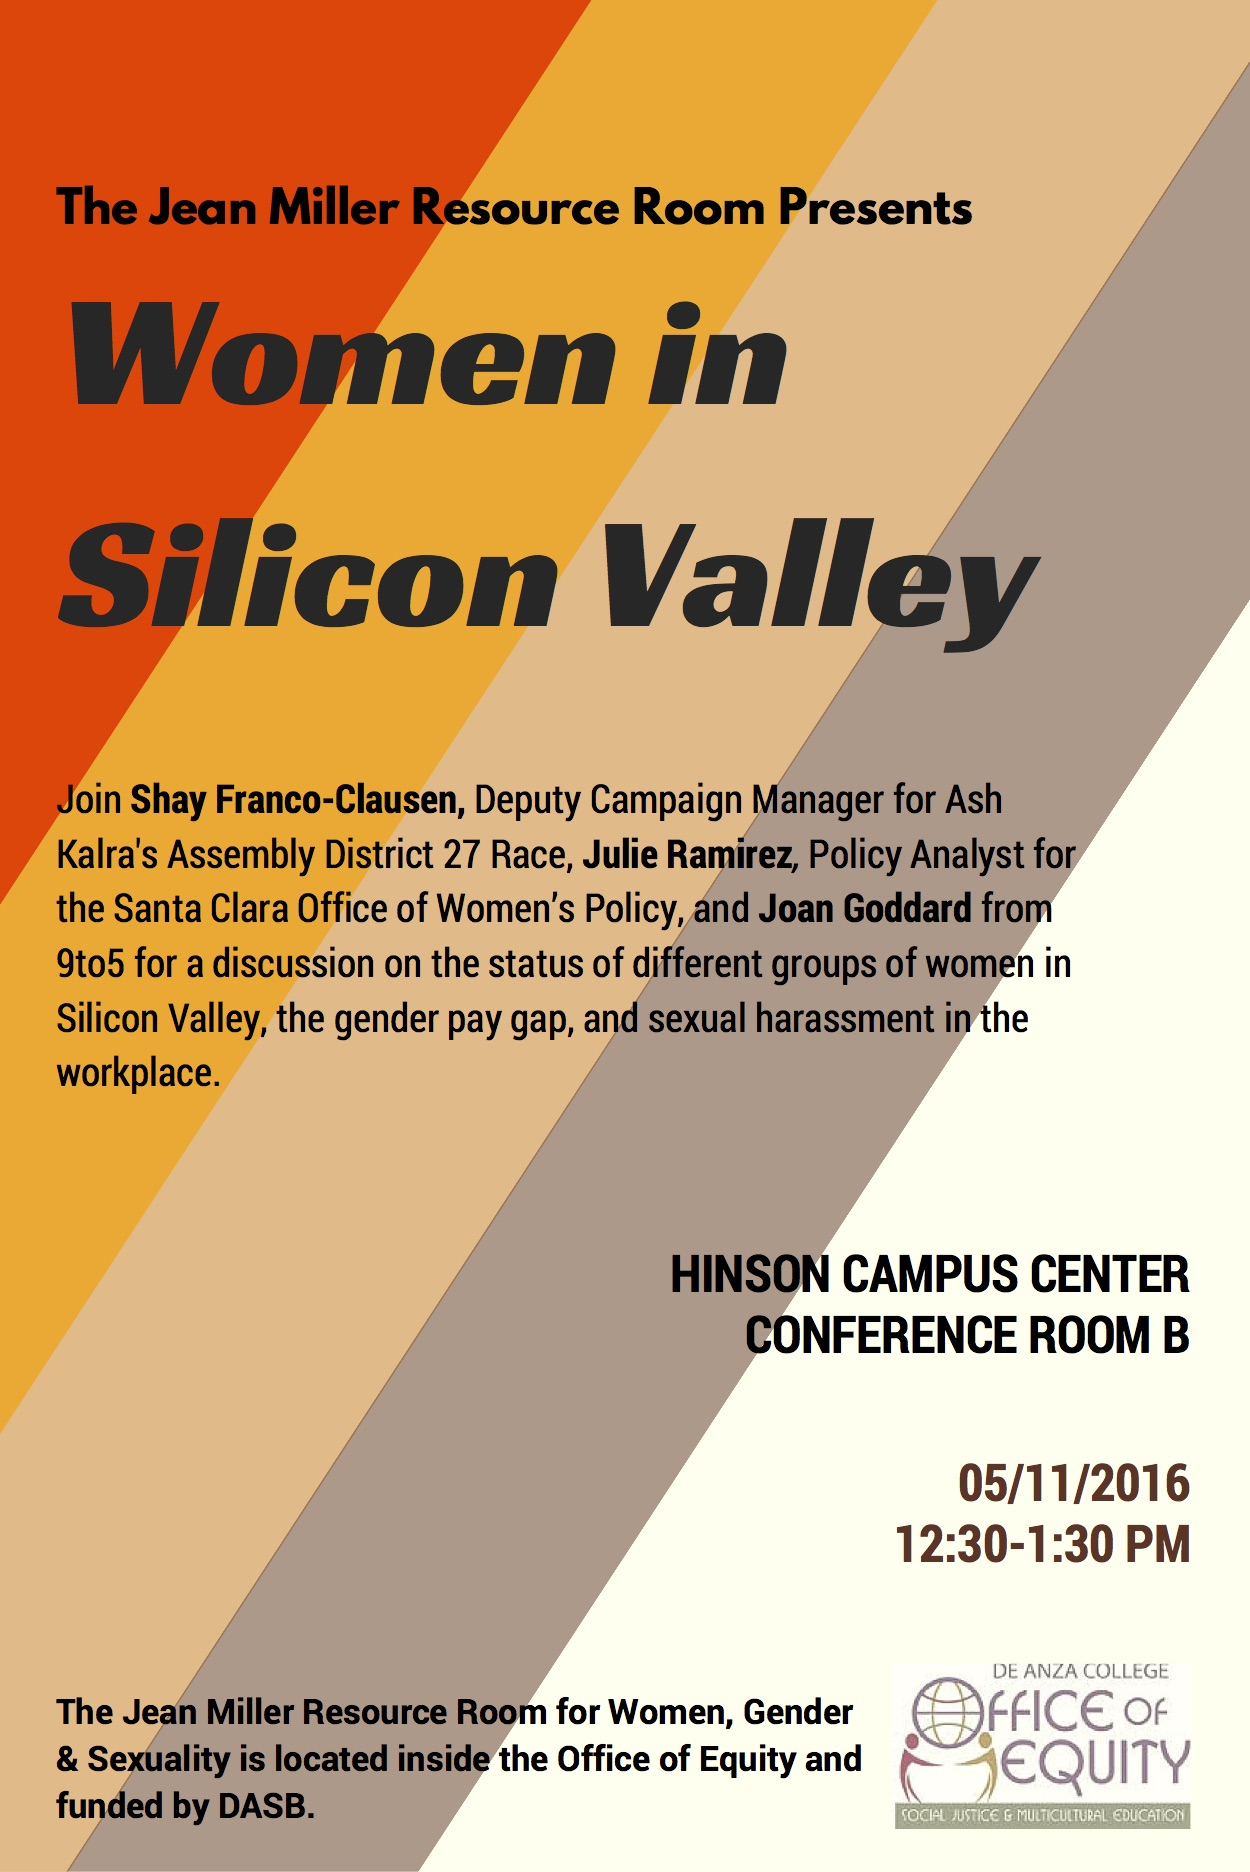 Women in Silicon Valley